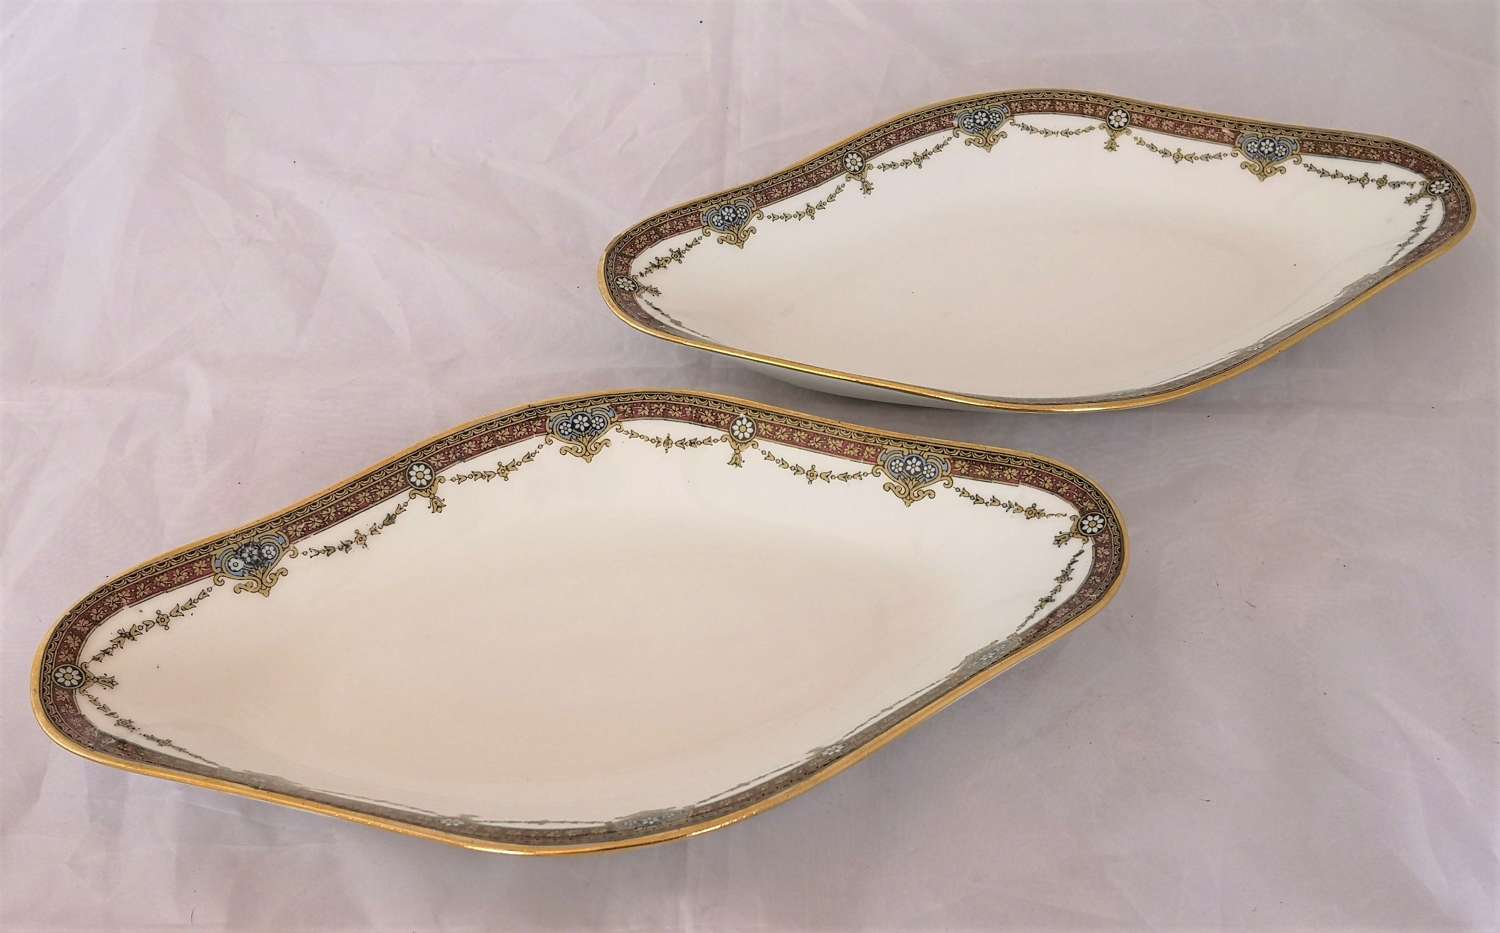 Two antique Limoges hors d'oeuvre dishes